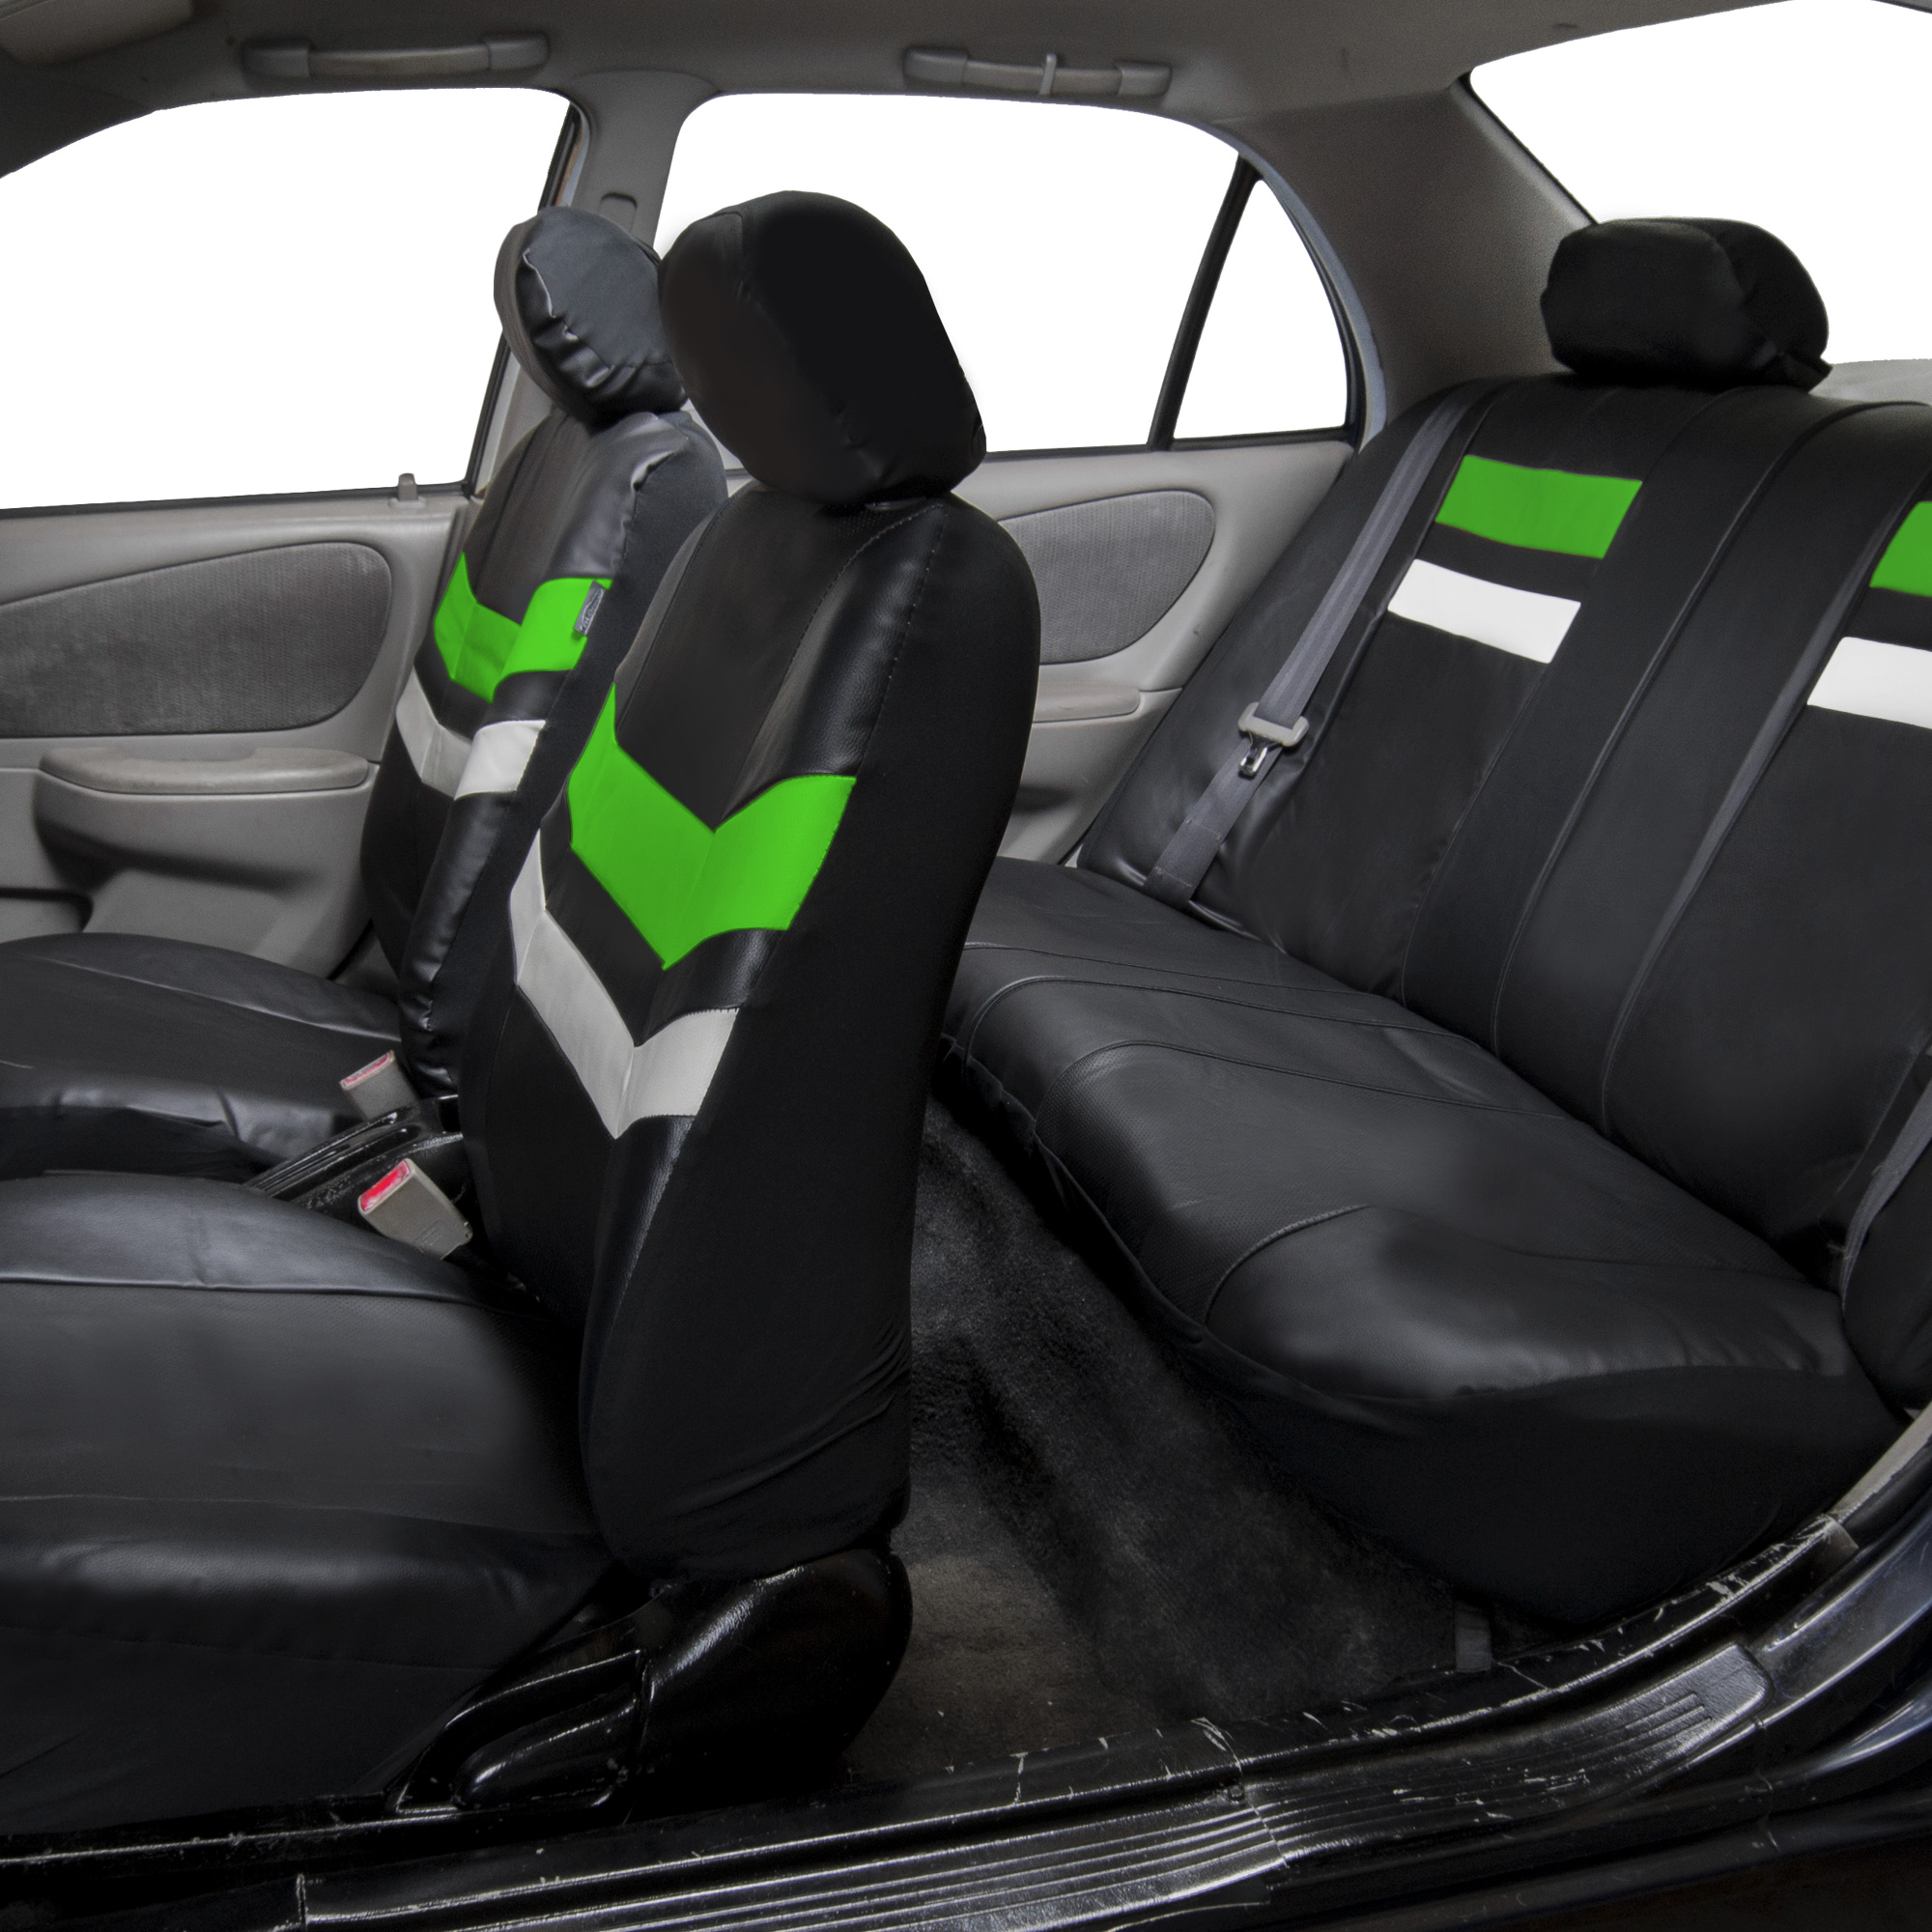 FH Group, Varsity Spirit PU Leather Seat Covers for Auto, 5 Headrests Full Set, 11 Colors